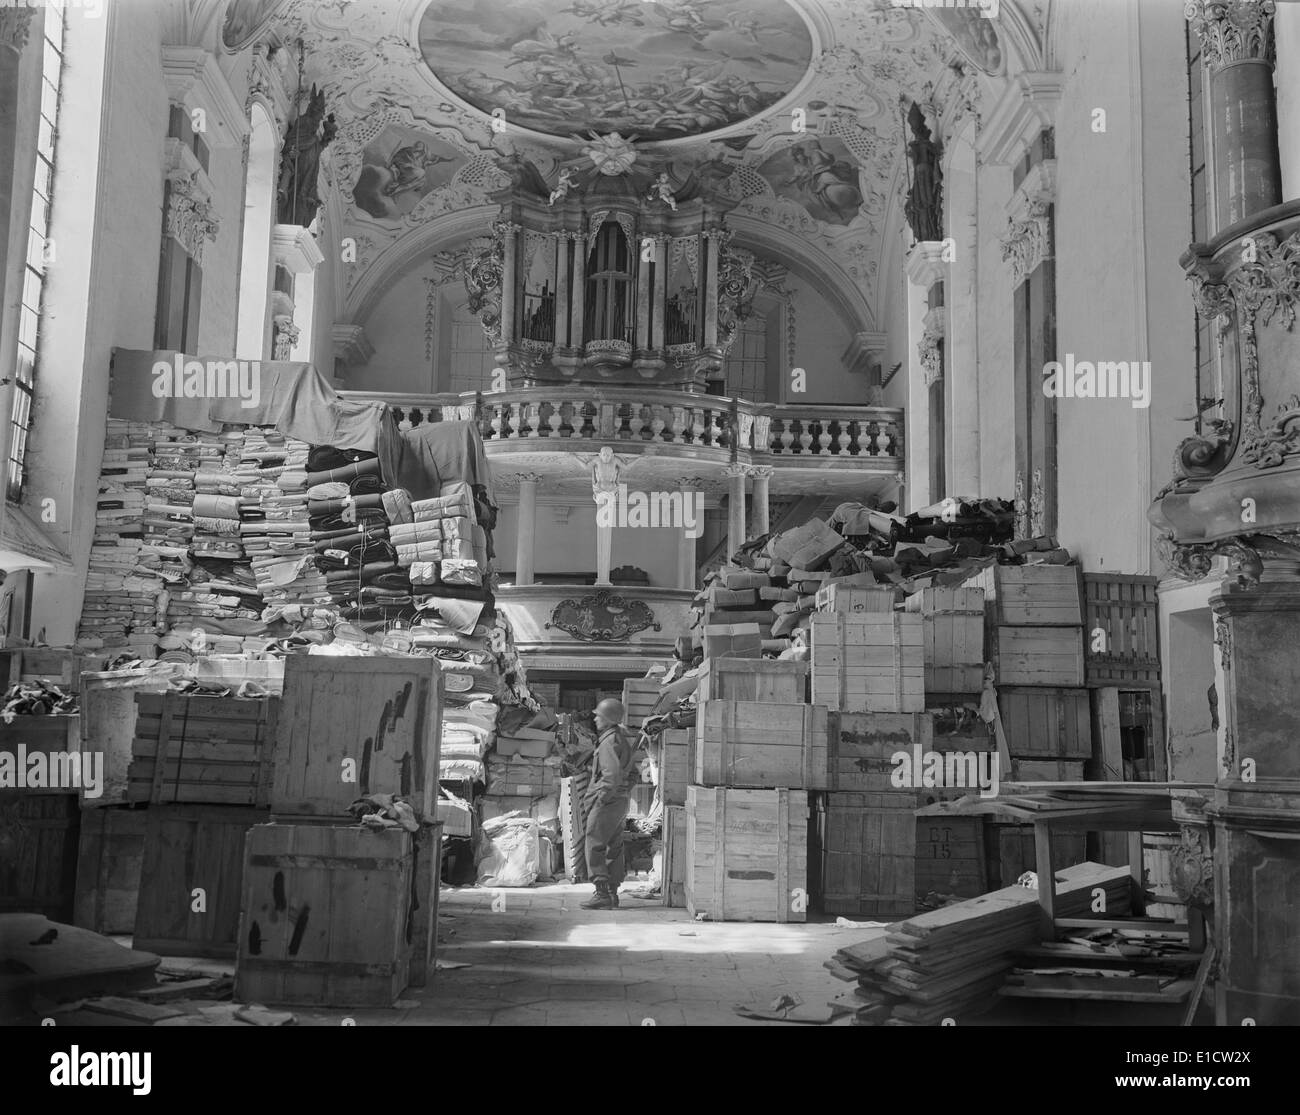 U.S. soldier among loot stolen from Jewish Holocaust victims, stored in church at Ellingen, Germany. The plundered Stock Photo